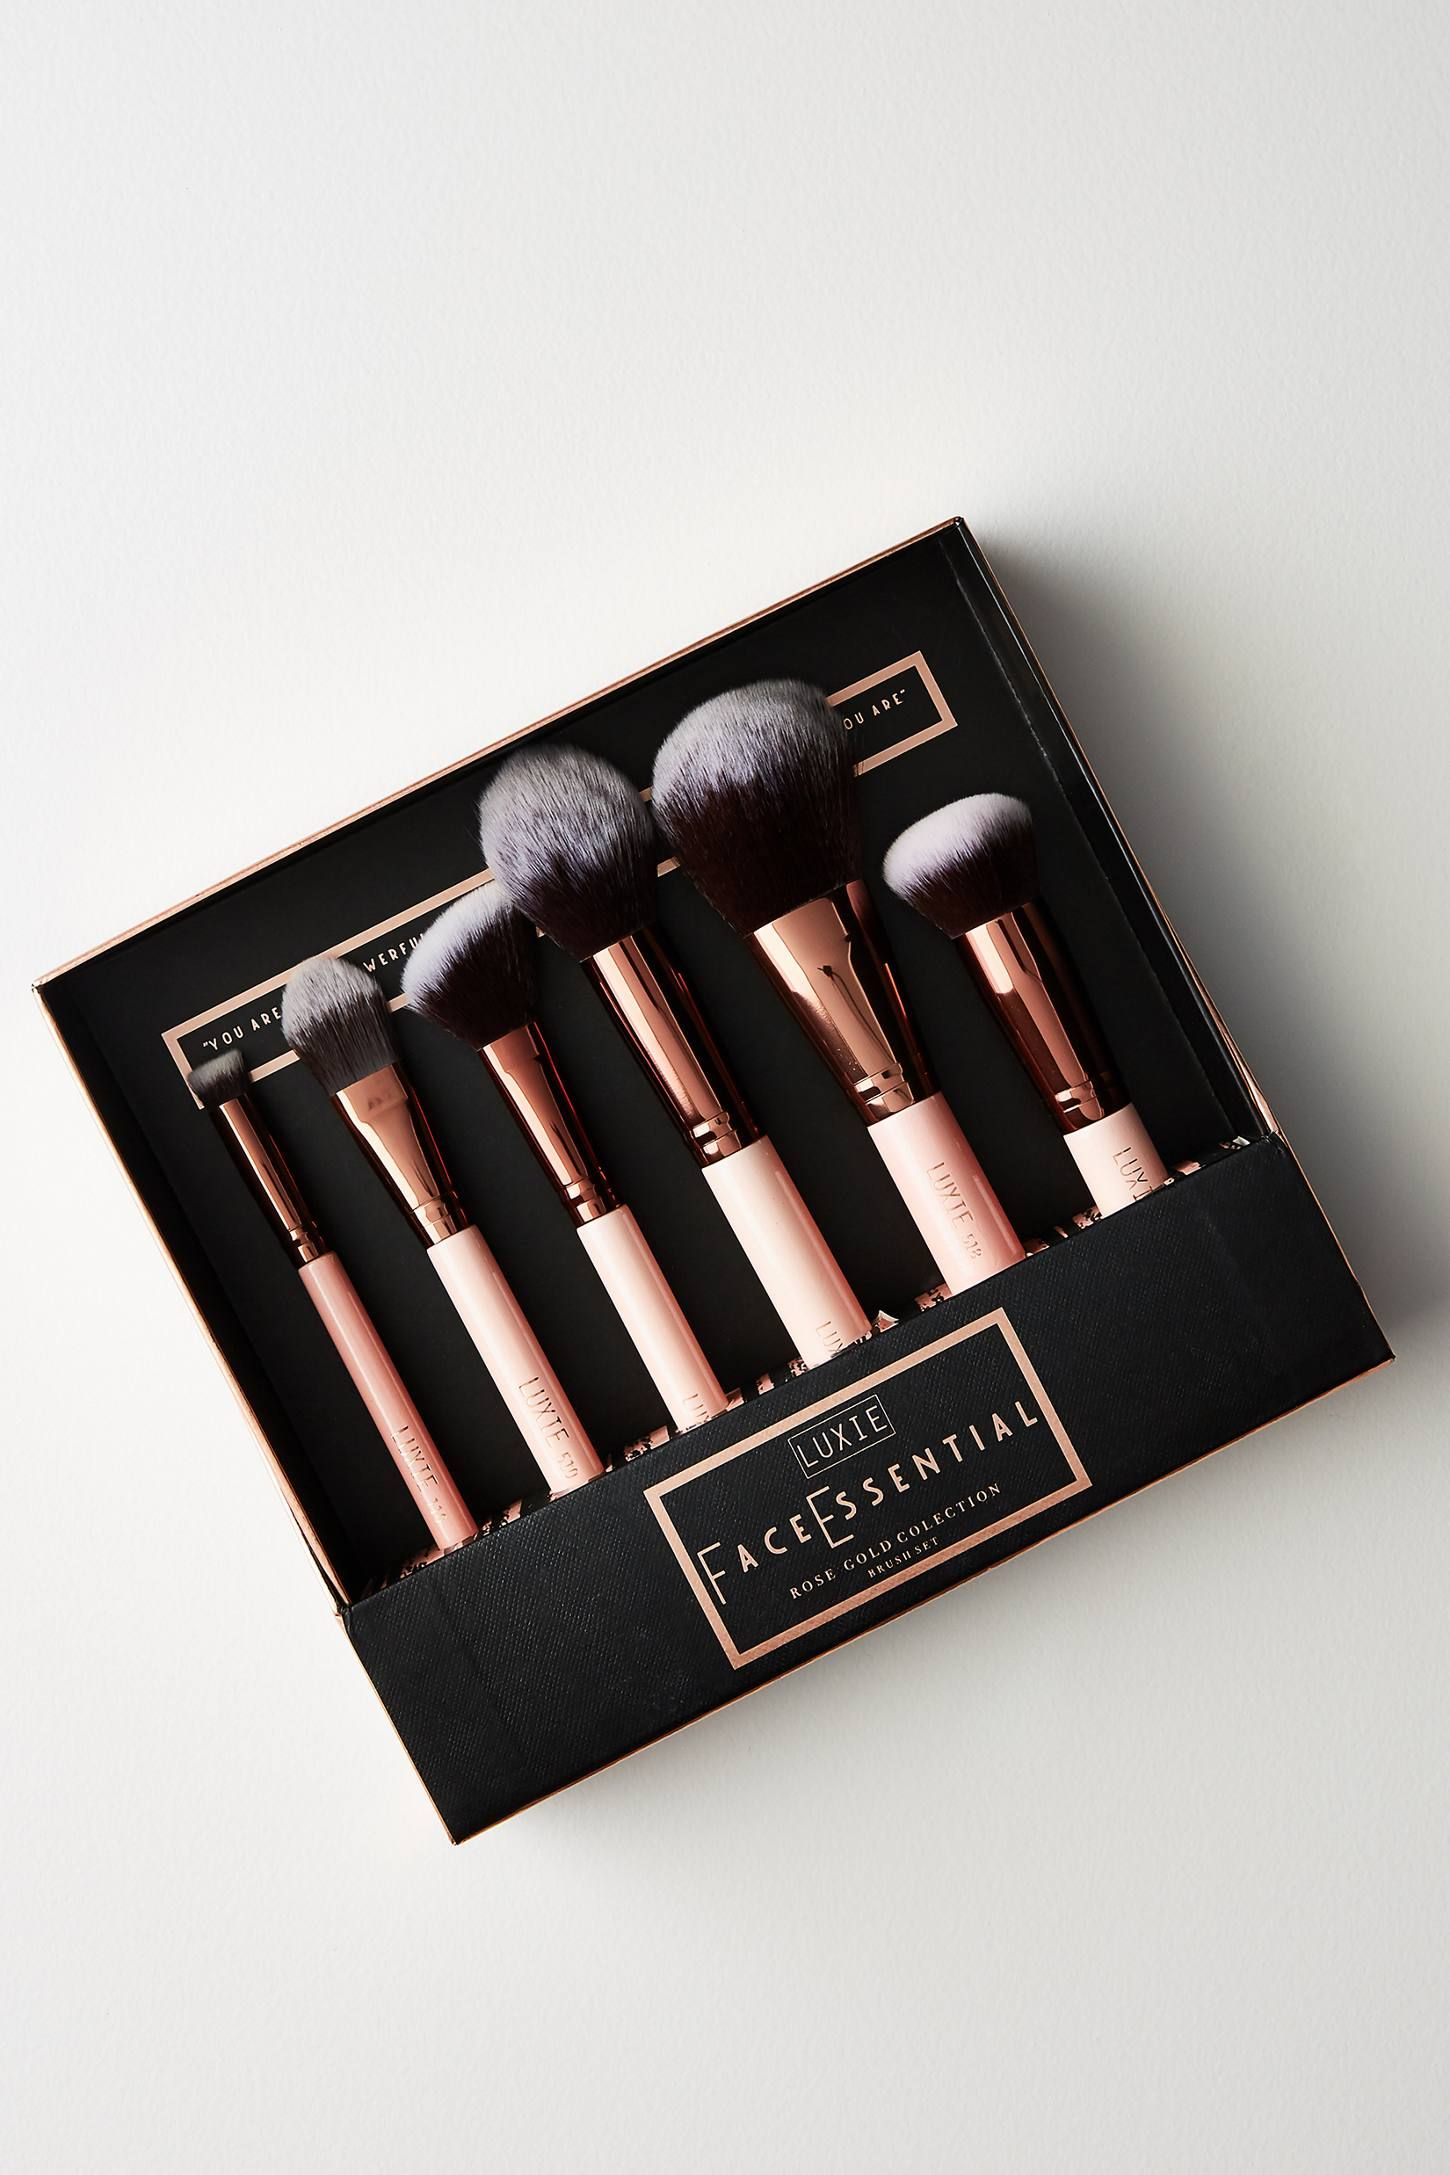 Luxie Face Essentials Brush Set How to apply makeup